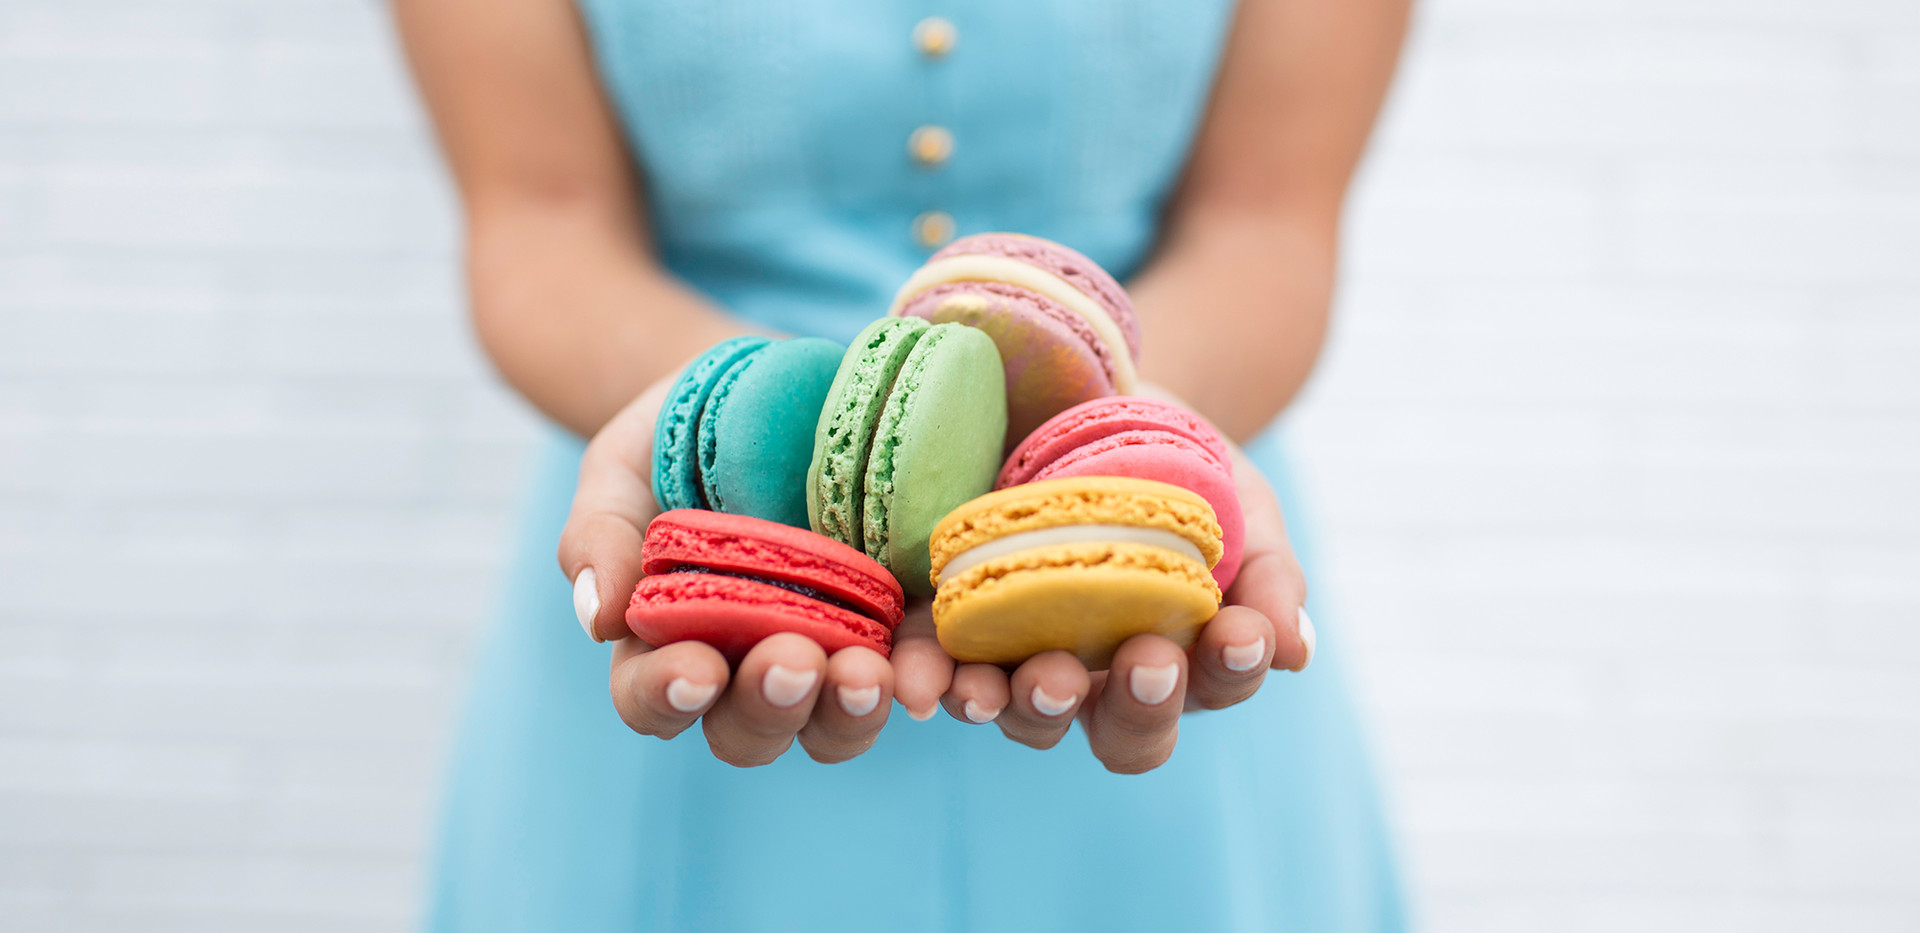 Delishes Macarons.jpg